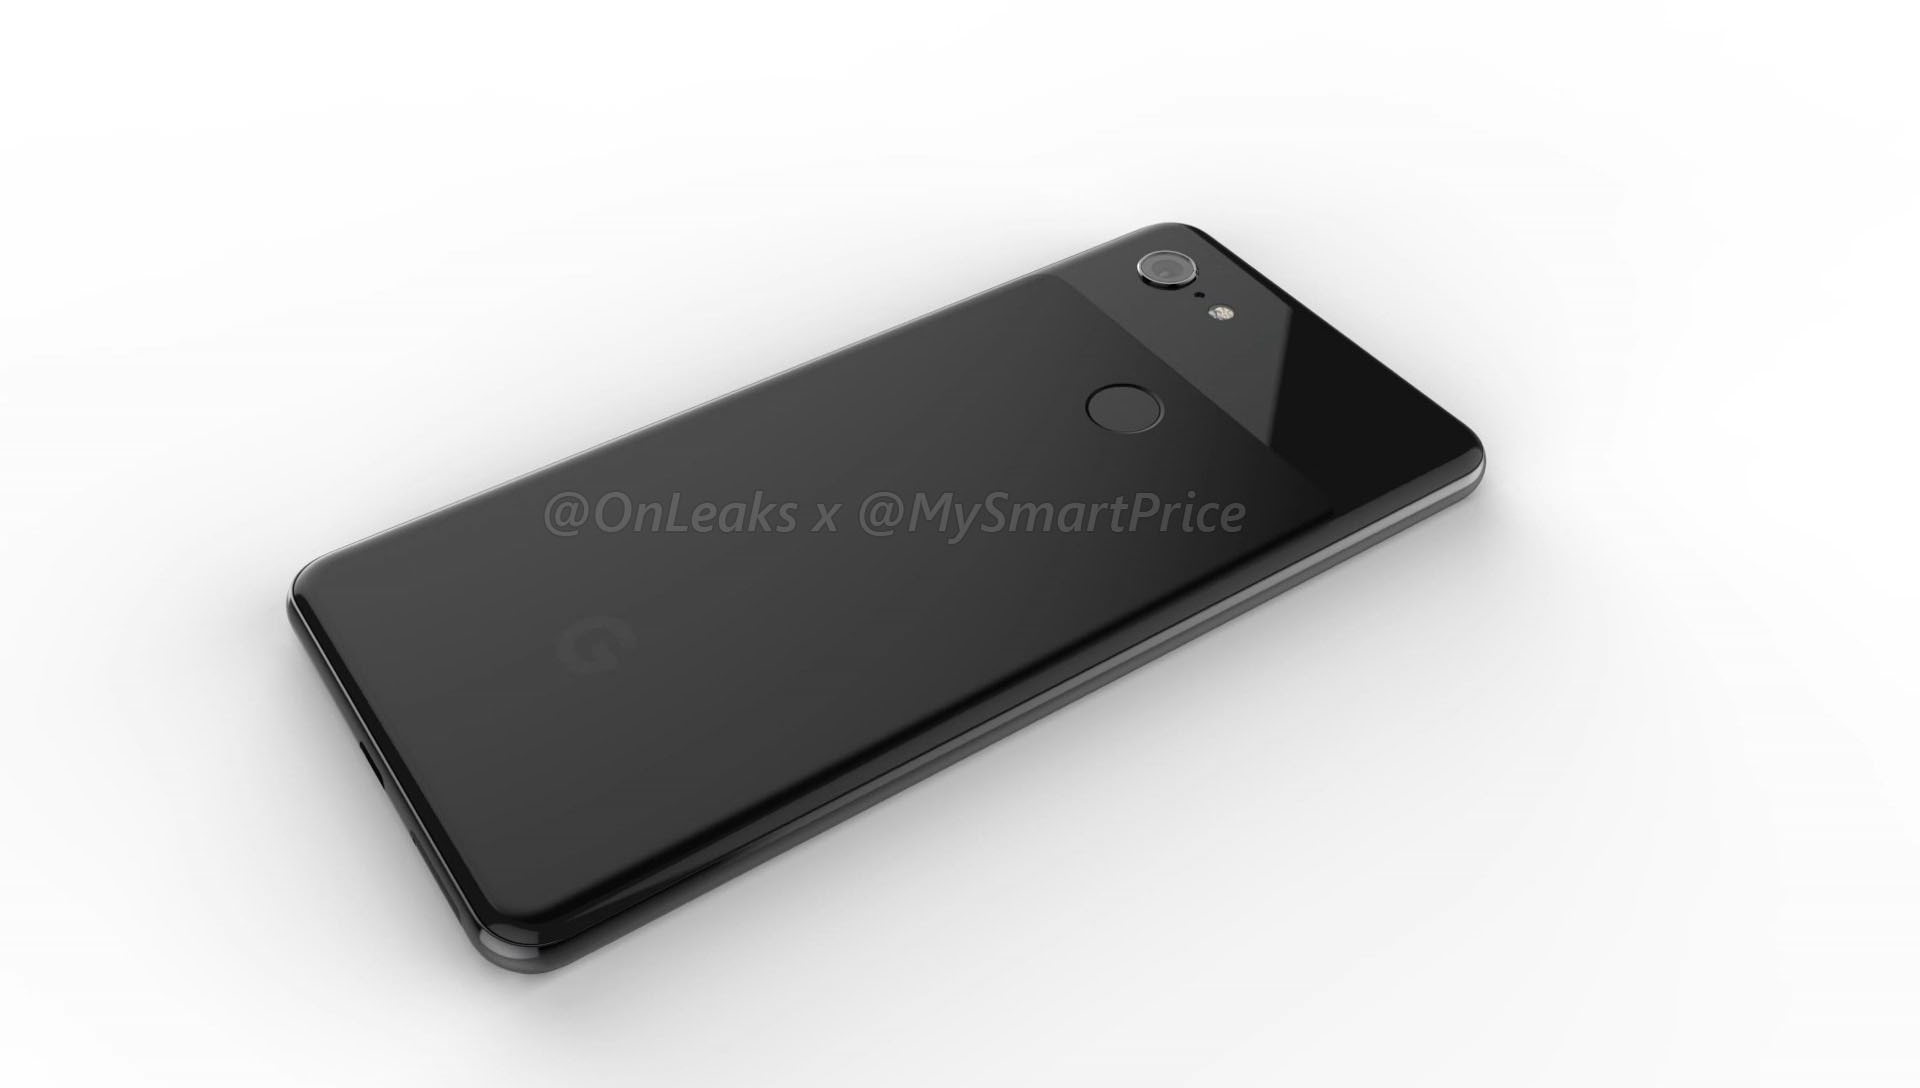 Google Pixel 3 & Pixel 3 XL - Here's our best look at the design 23